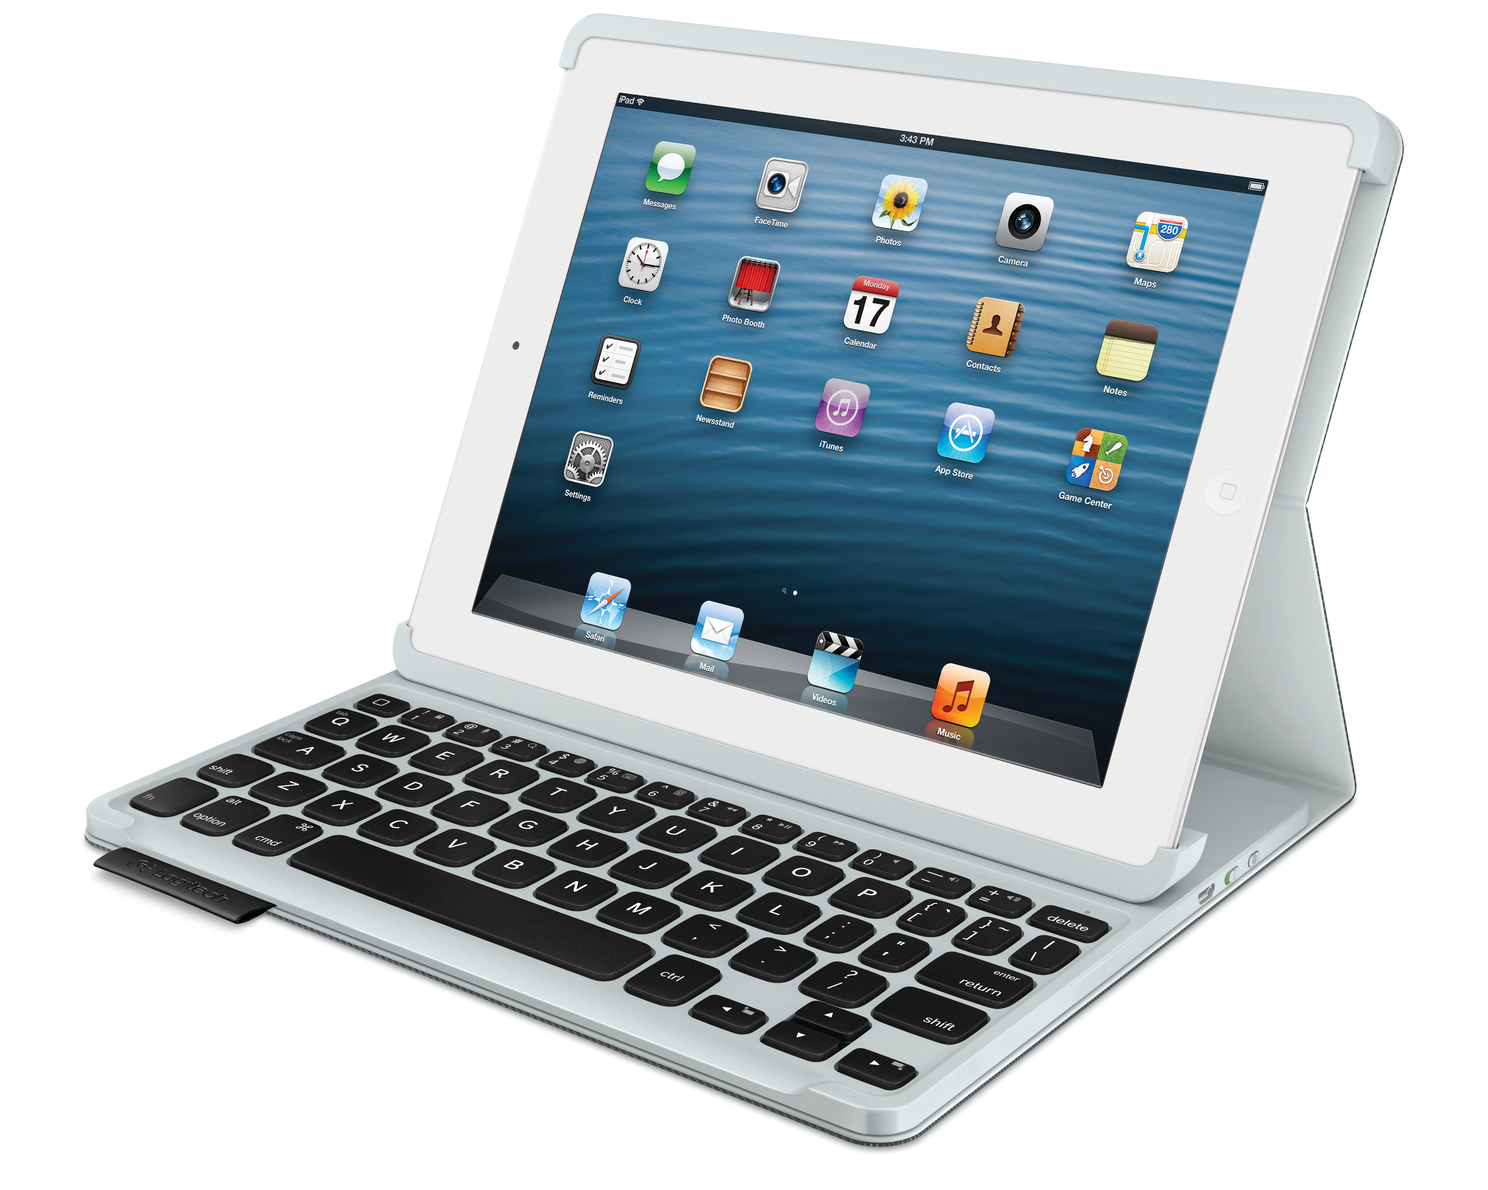 Logitech Keyboard Folio Logitech Keyboard Folio is the perfect companion for iPad and iPad Mini